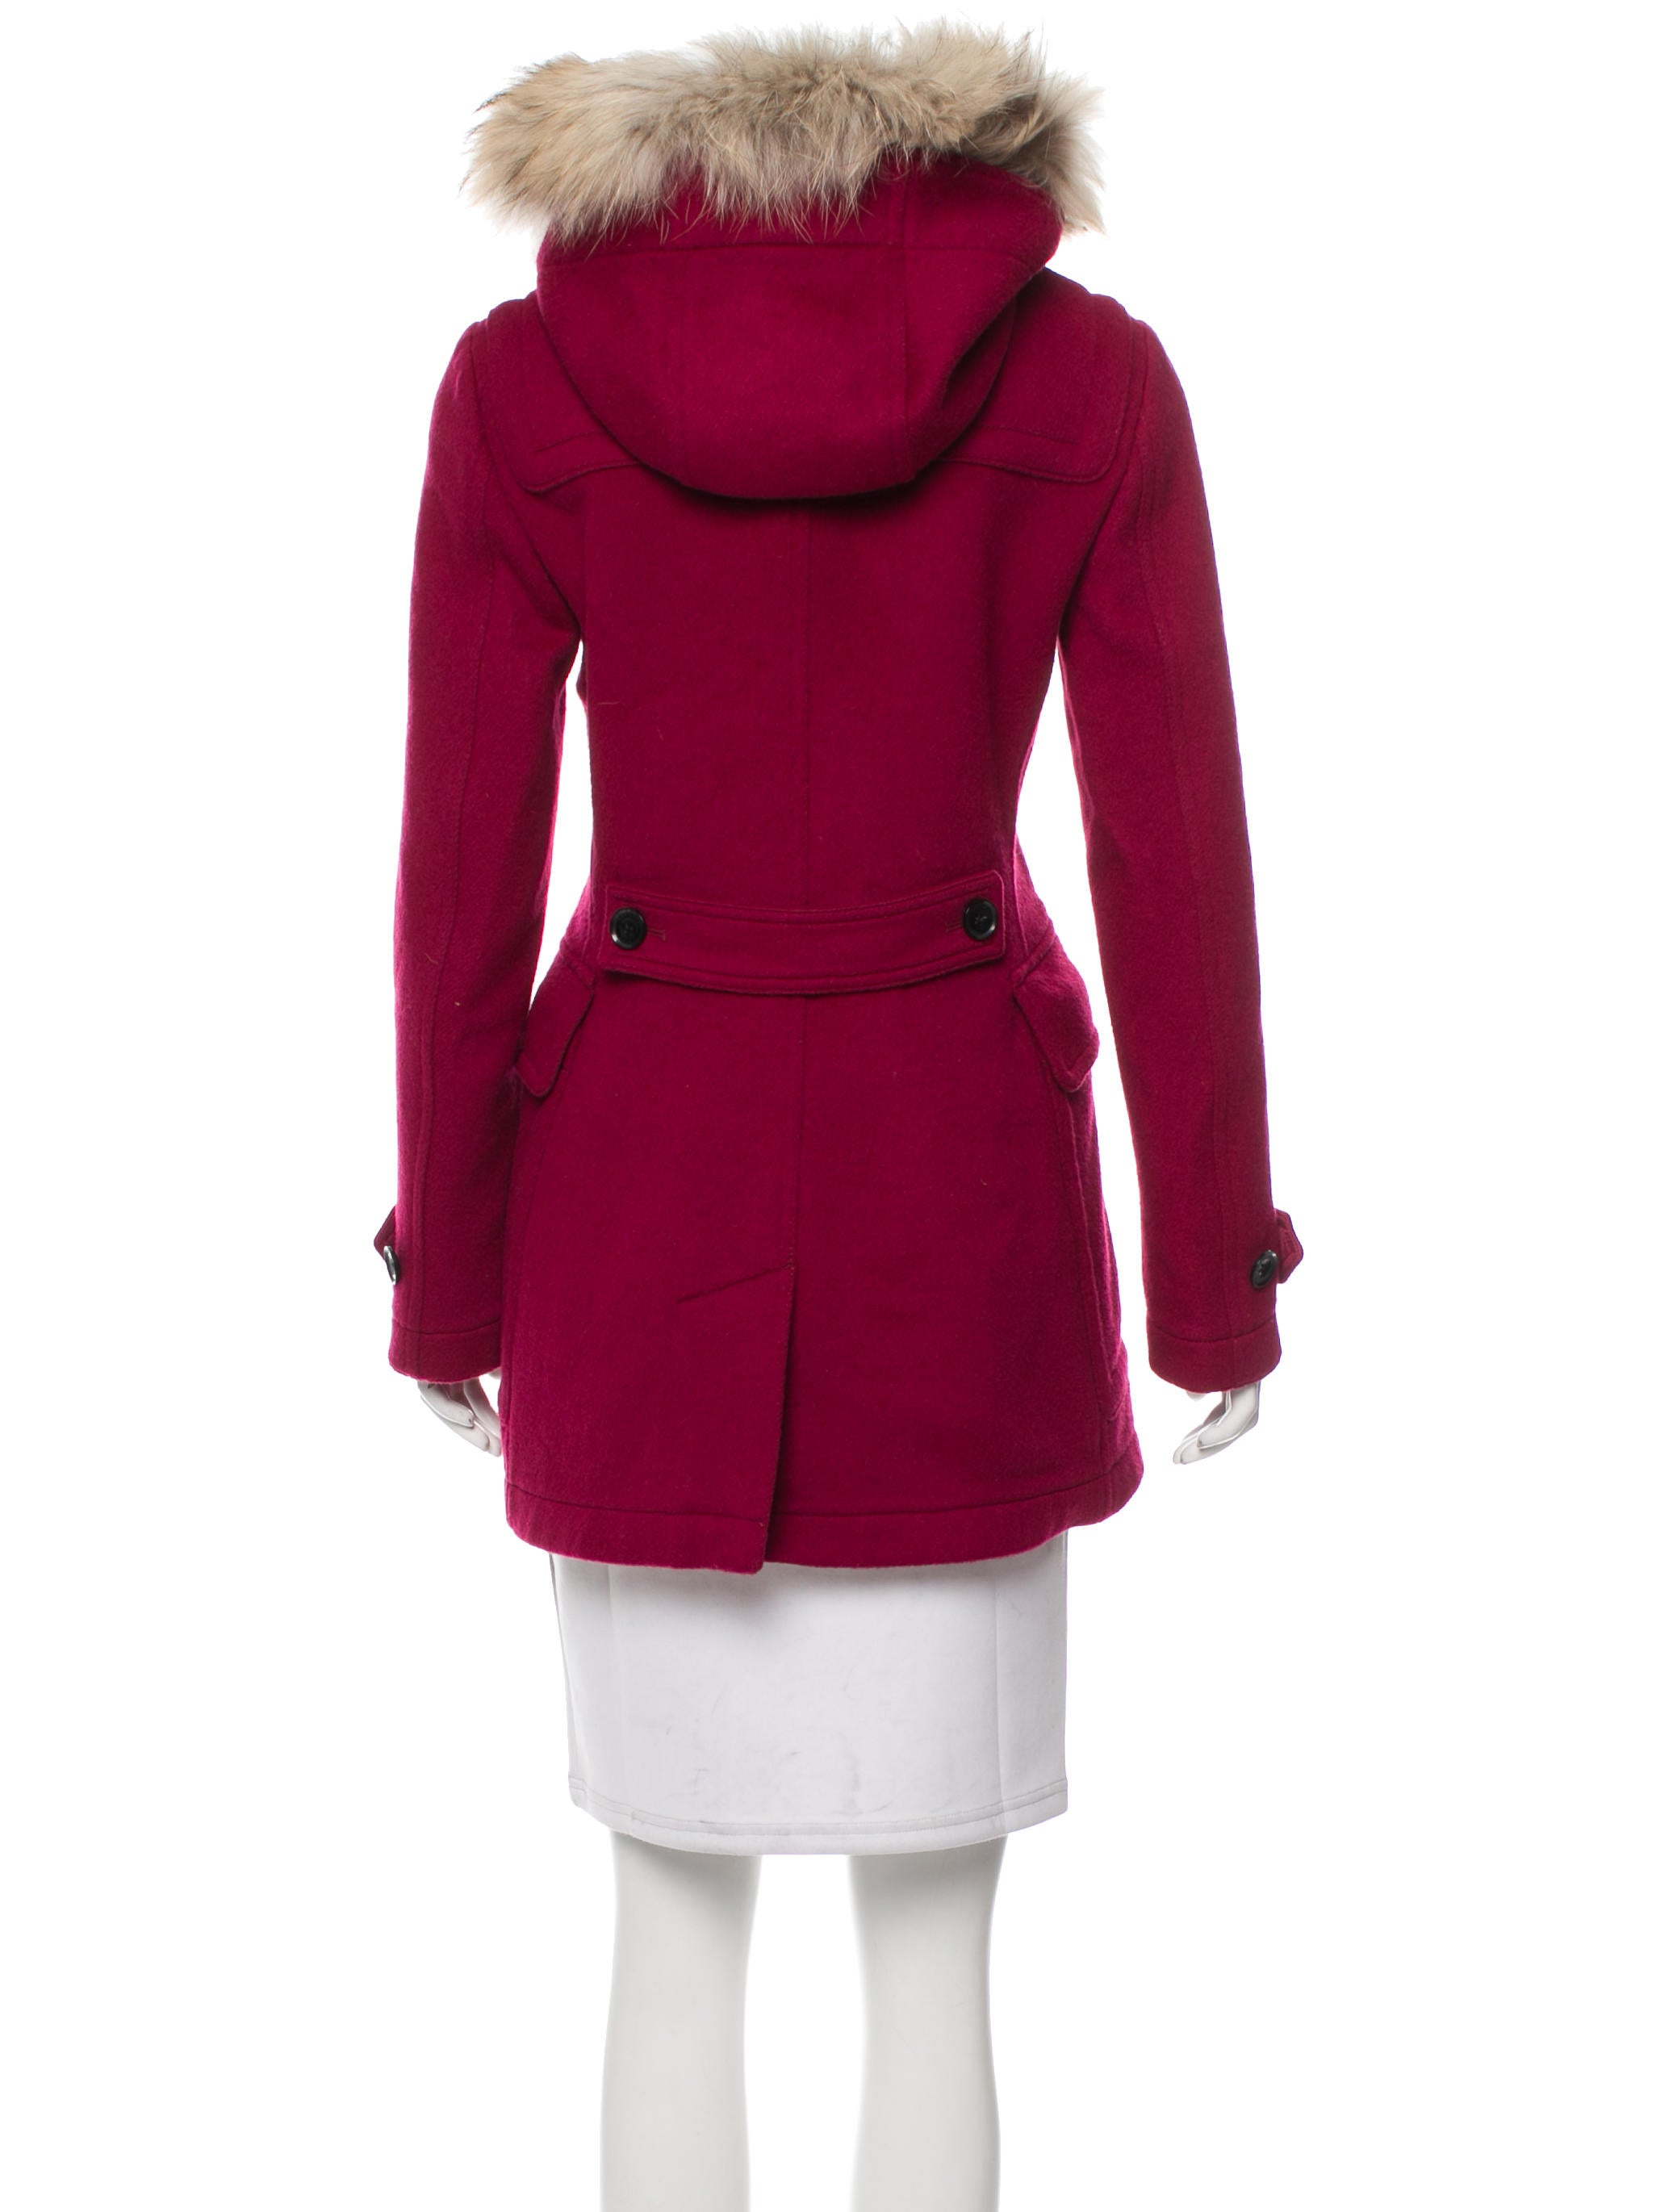 Free shipping BOTH ways on Wool and Pea Coats, Women, from our vast selection of styles. Fast delivery, and 24/7/ real-person service with a smile. Click or call